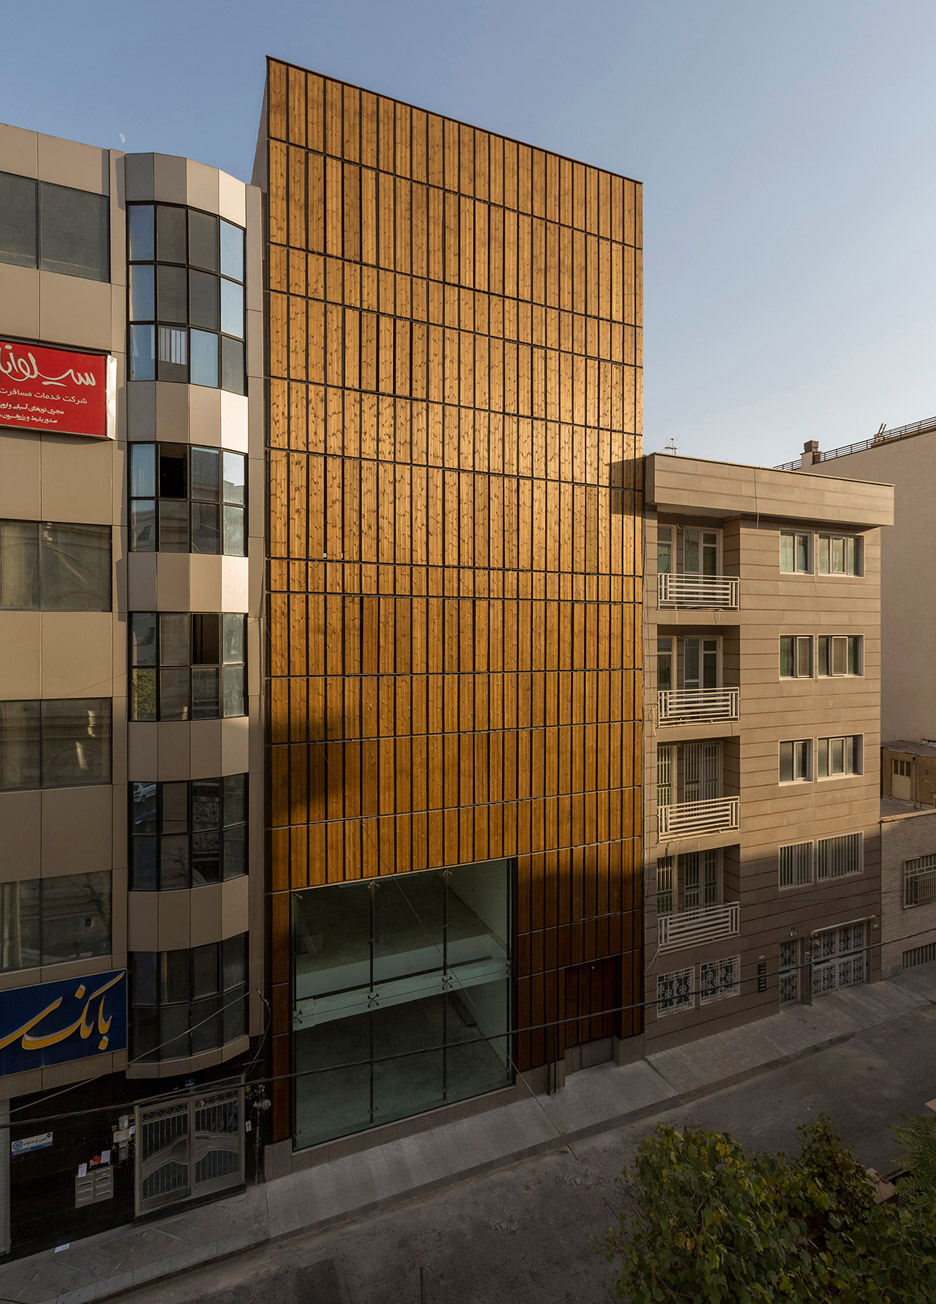 Office block on Tehran, Iran by LP2 architecture studio